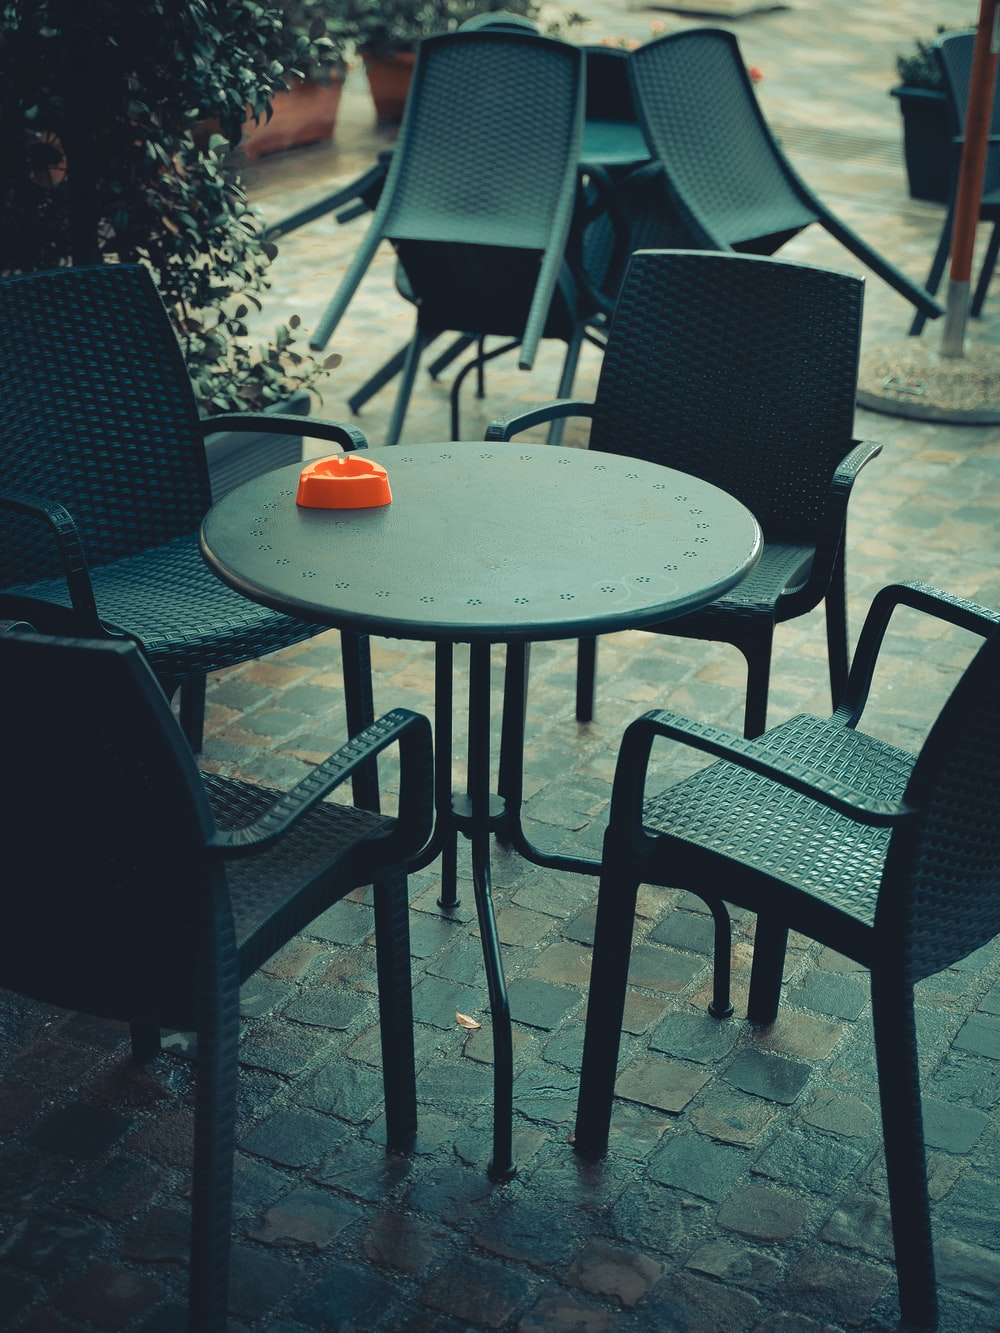 Patio Furniture Pictures Download Free Images On Unsplash